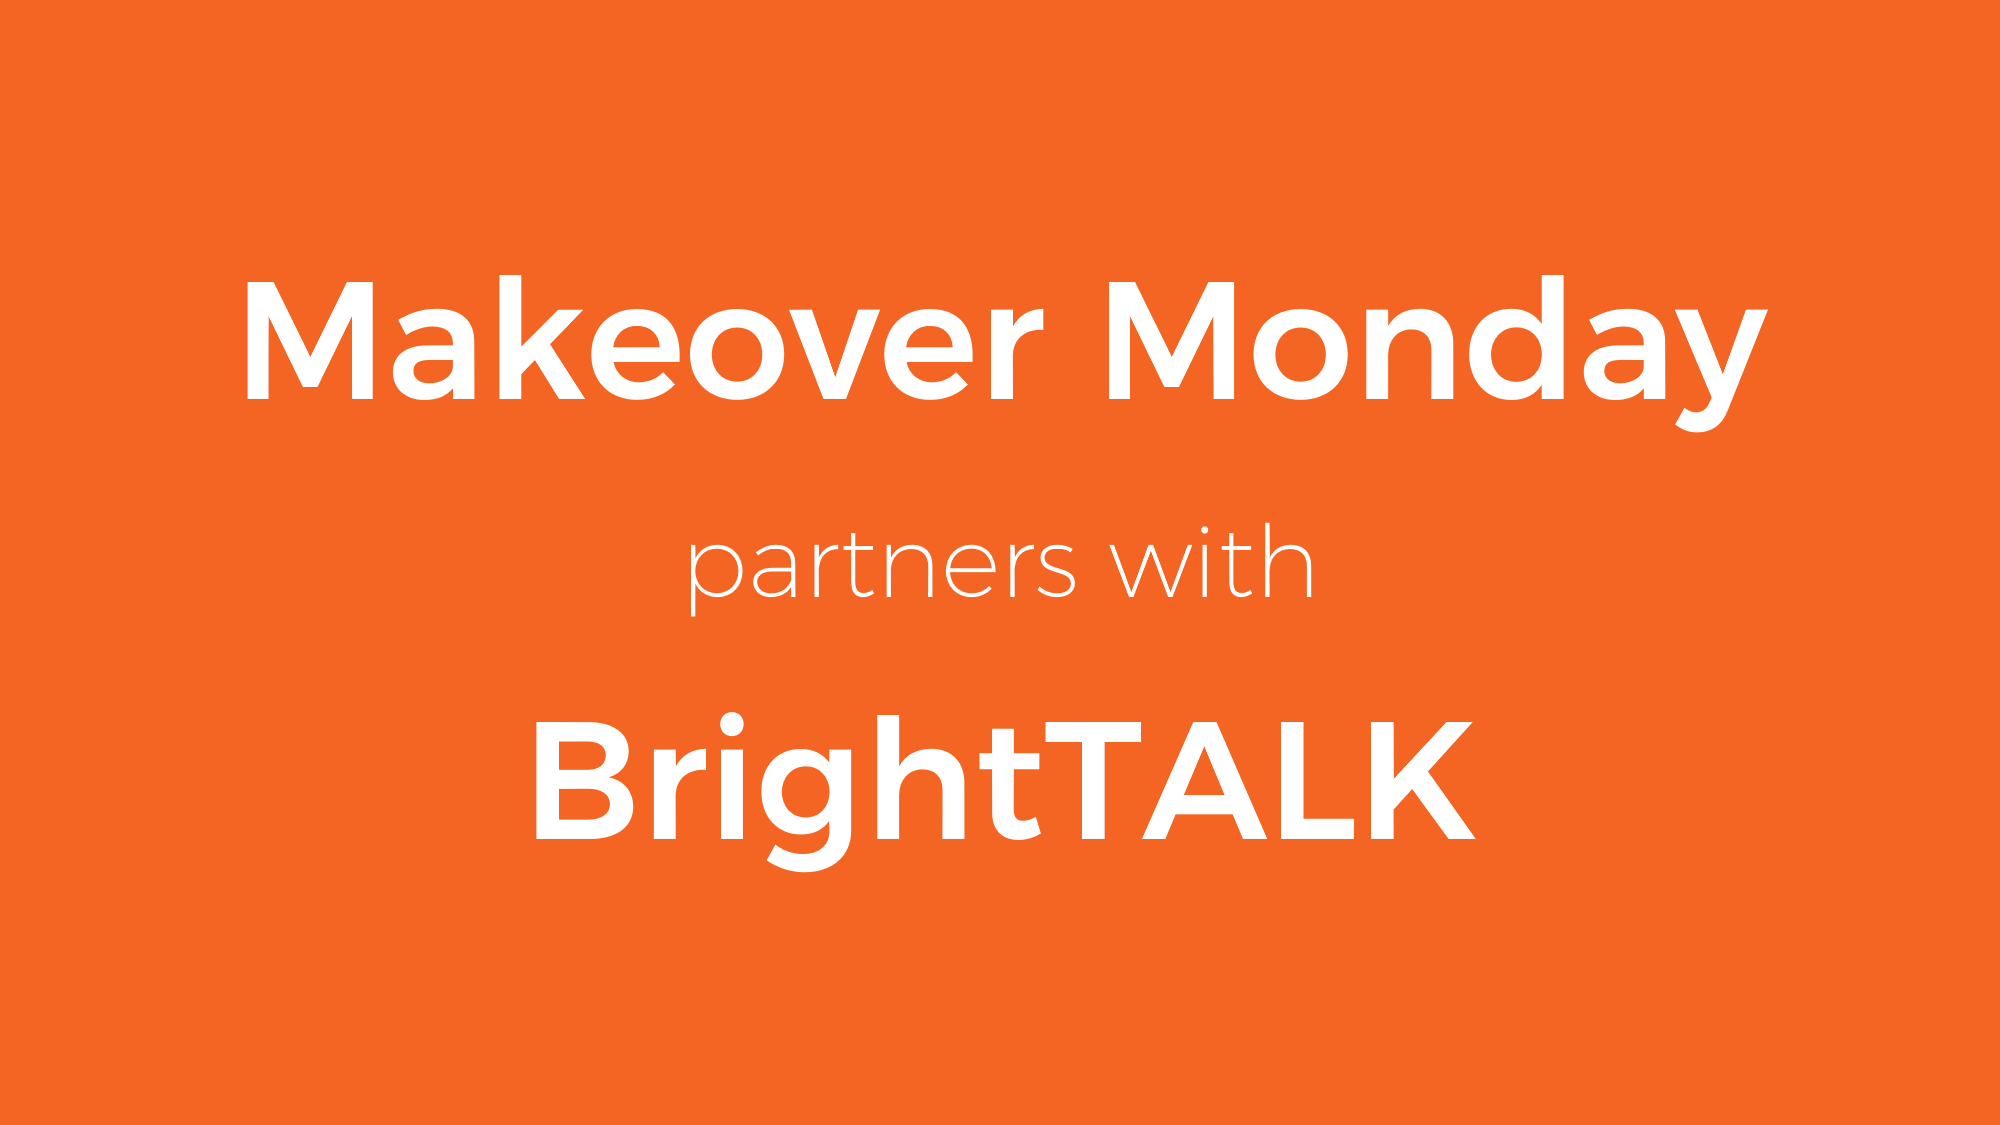 Makeover Monday becomes a BrightTALK Partner